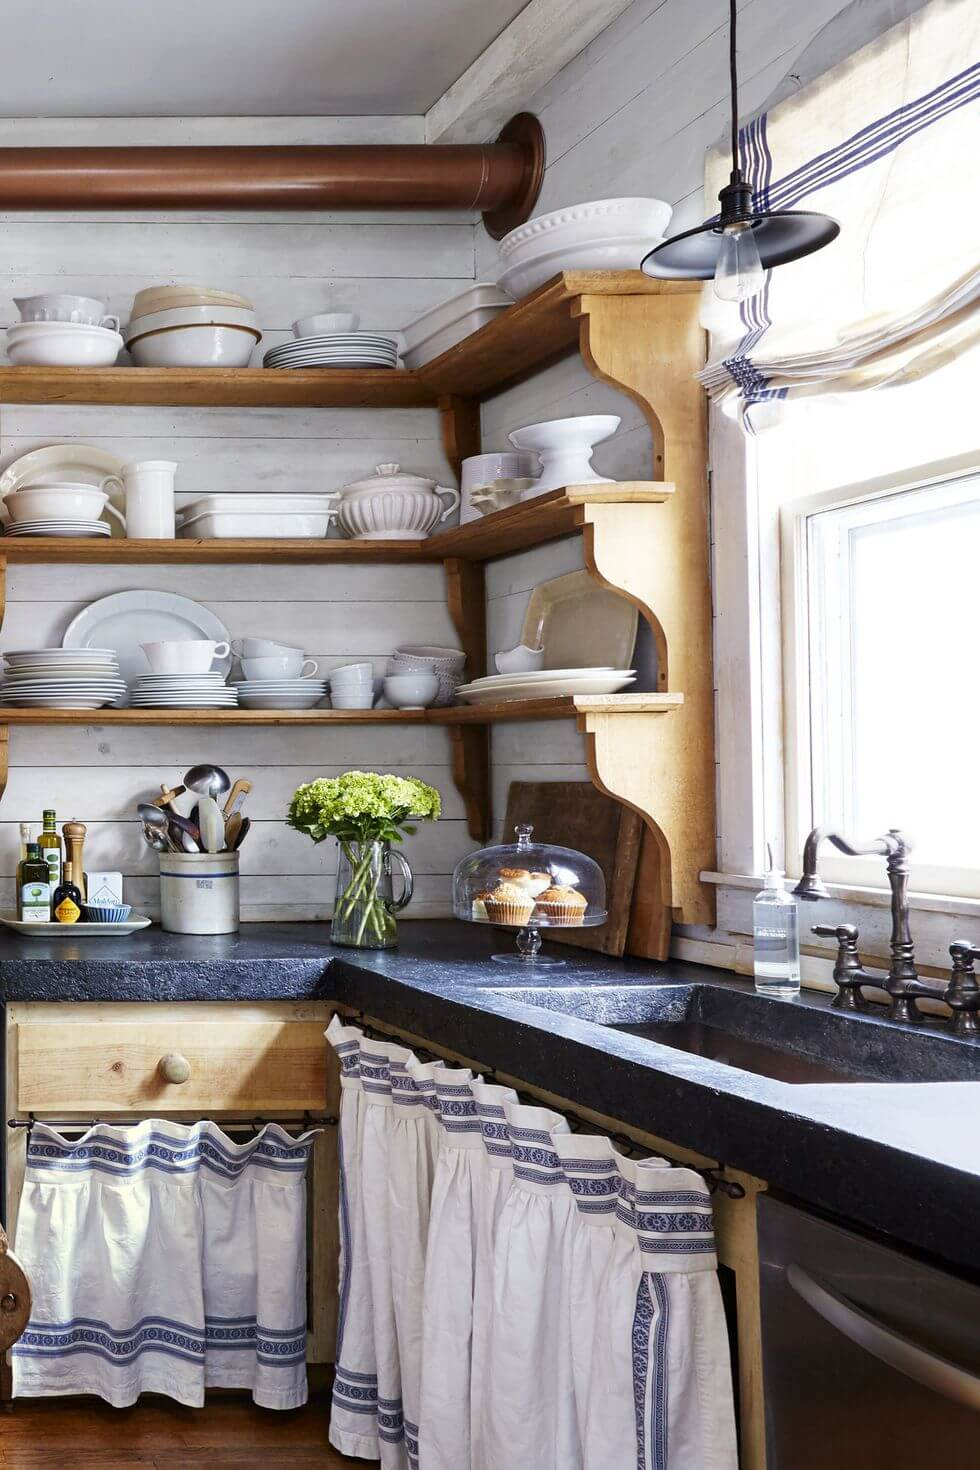 Pine shelves with blue countertops, andskirted storage from old linen tablecloth | Inspiring Farmhouse Kitchen Design & Decor Ideas